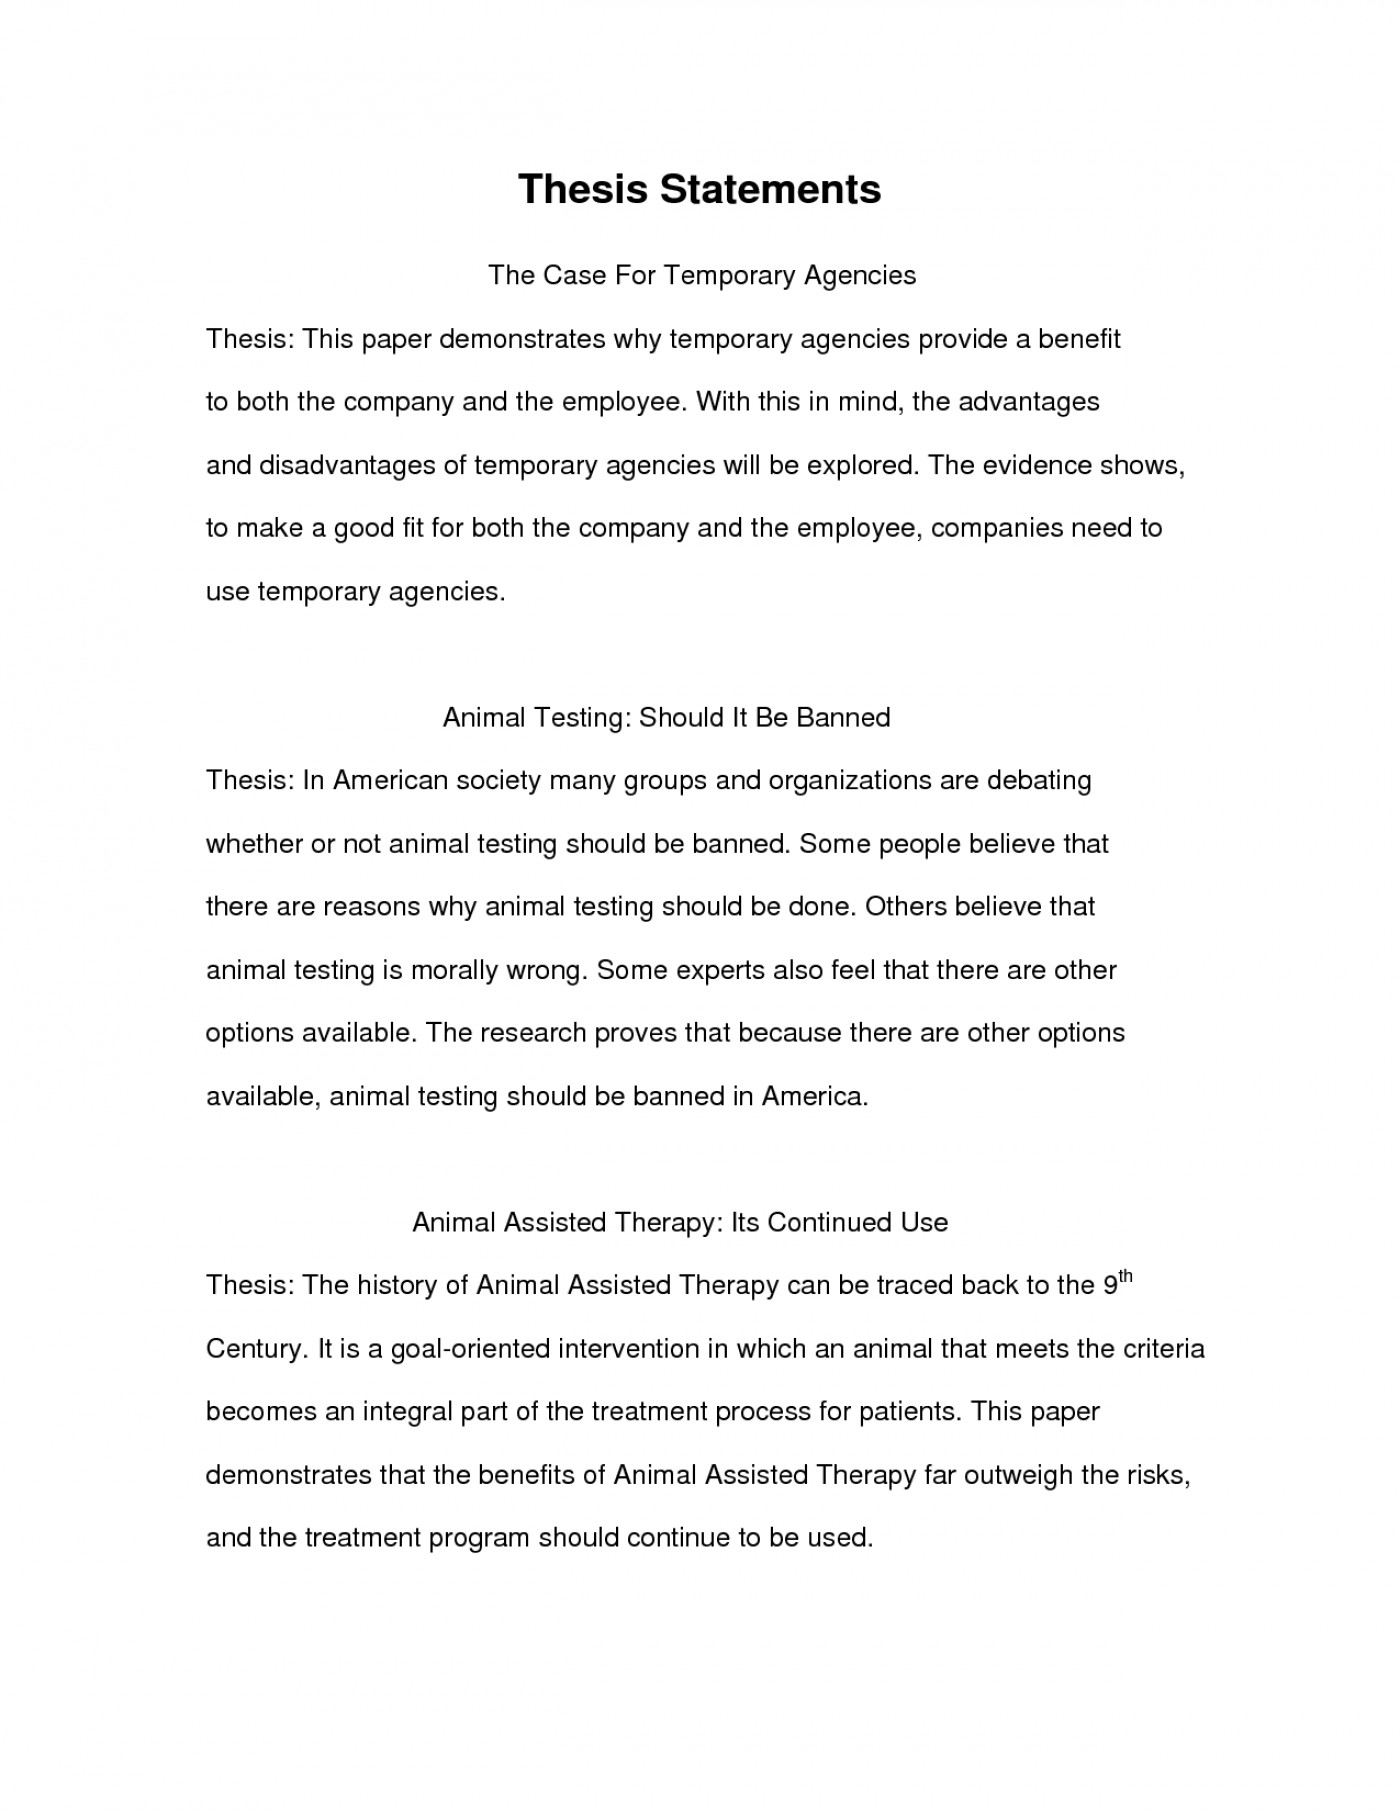 What Is A Thesis Statement In An Essay Examples  Thesis Statement Examples For Persuasive Essays also Help Writing Essay Paper  An Example Of Research Paper Thesis Statement Examples  Thesis Statements For Essays